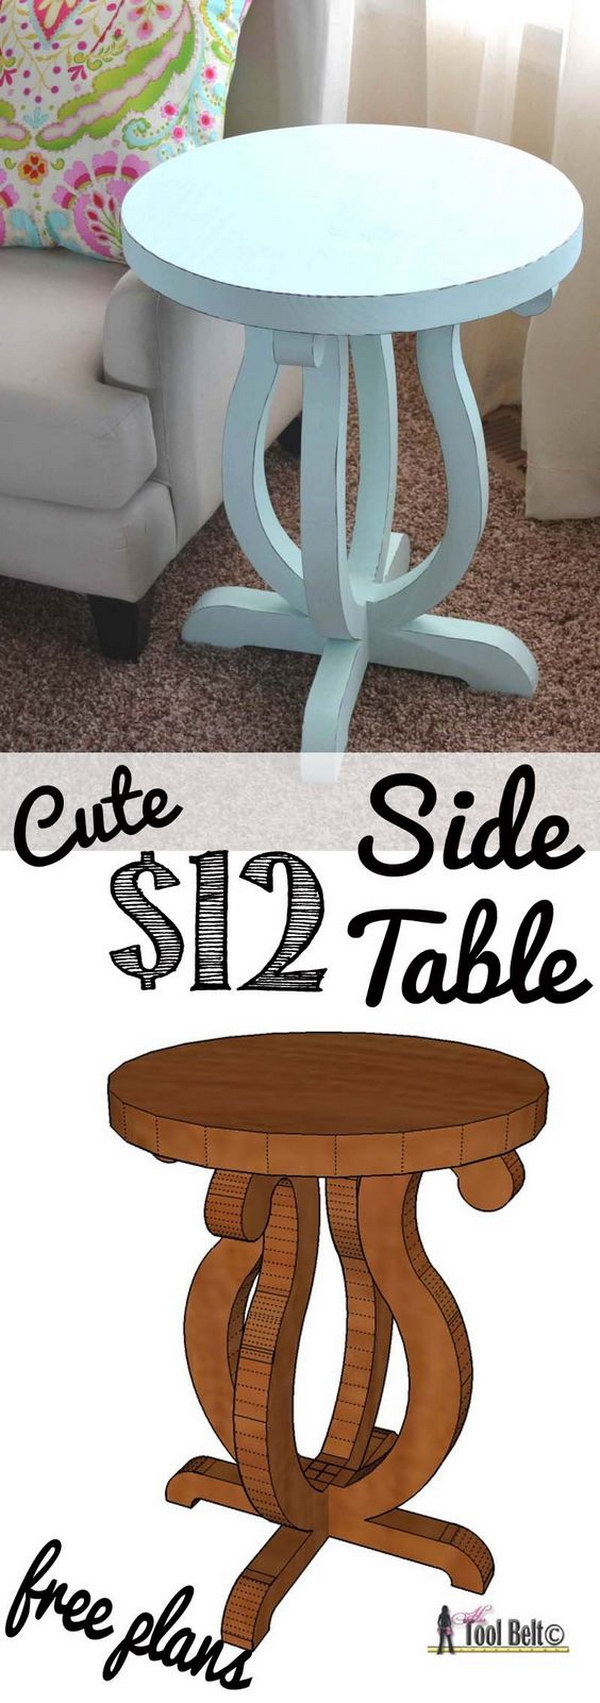 25 diy side table ideas lots of tutorials ideastand 12 curvy side table